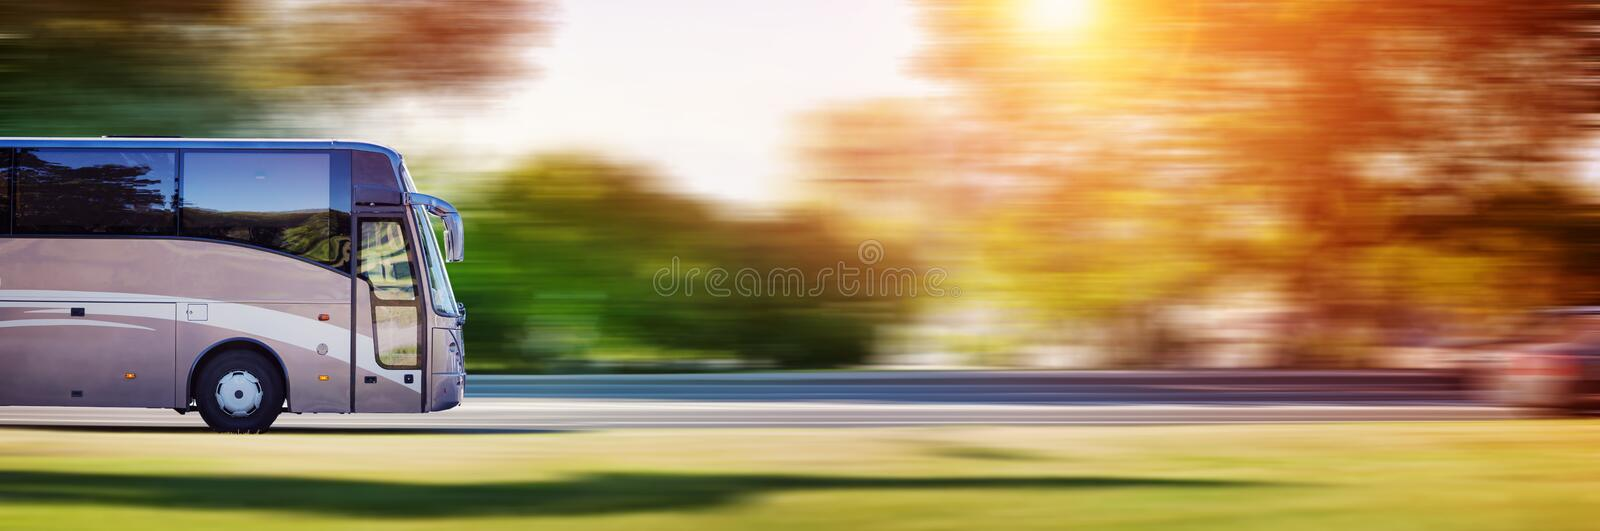 Bus on asphalt road in beautiful spring day stock photography